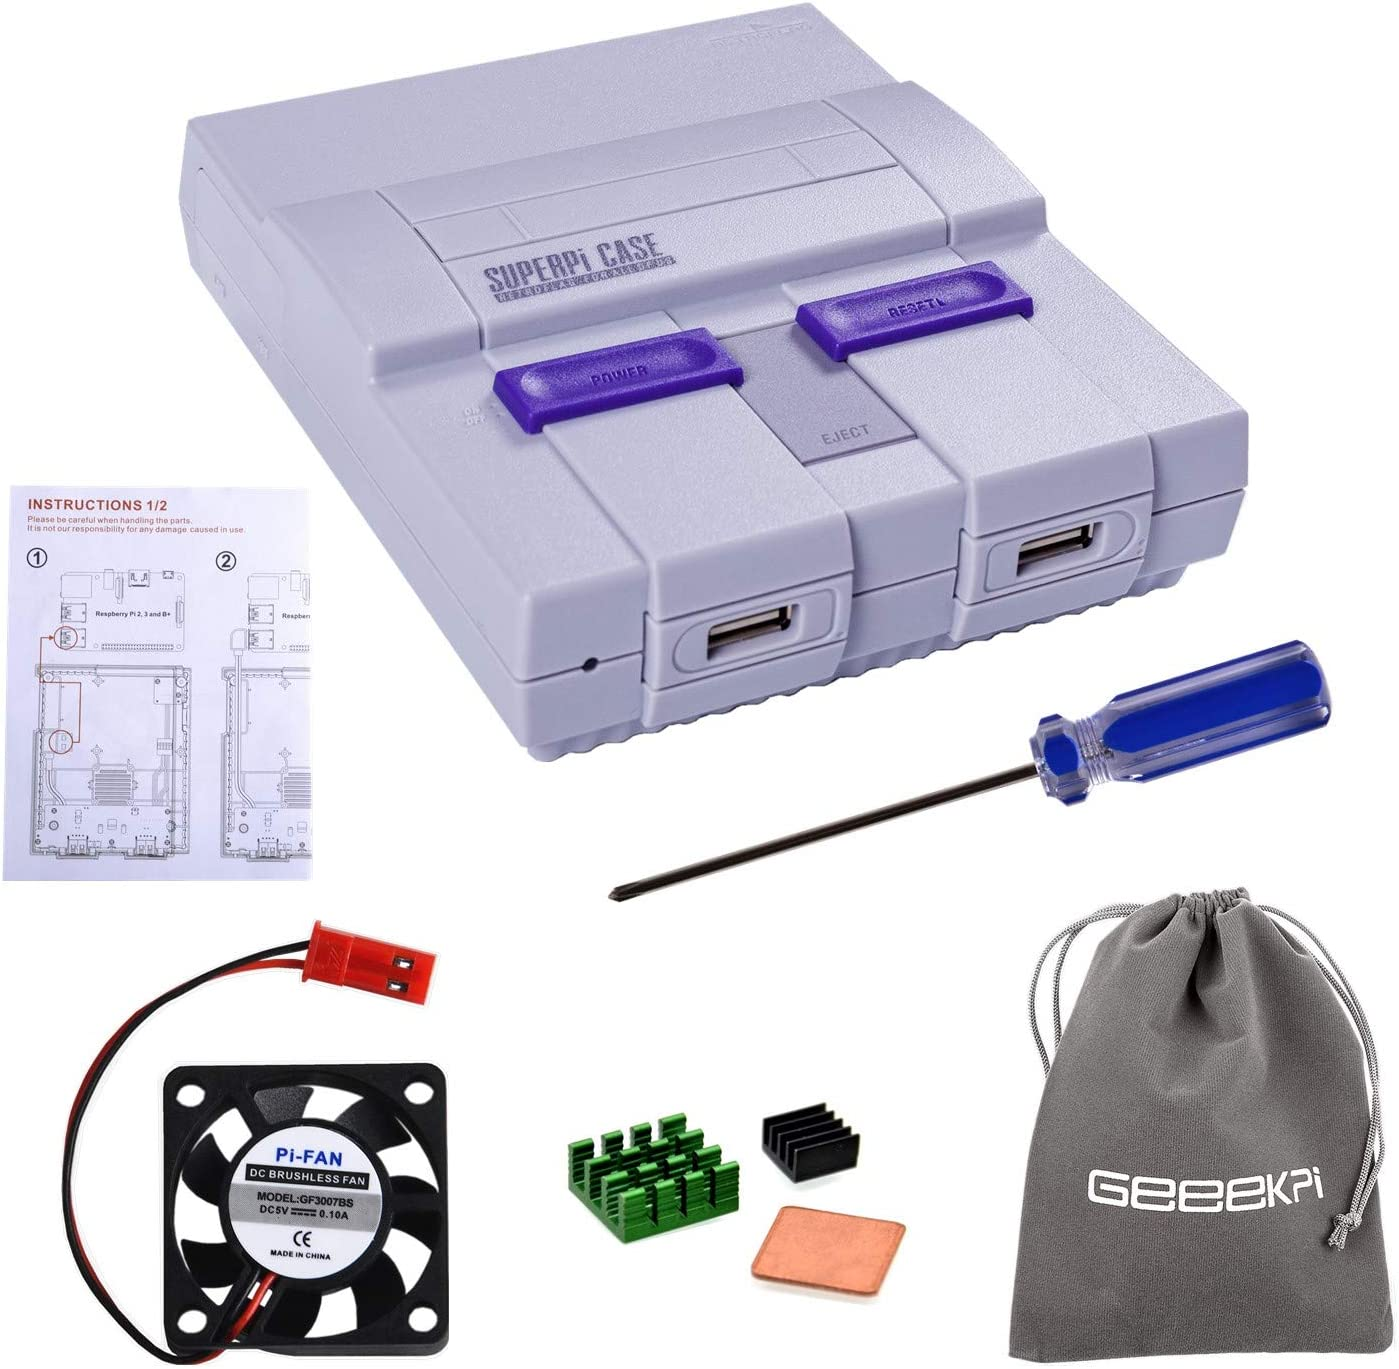 Retroflag SUPERPI CASE UCase NESPI CASE SNES Case with Functional Power Button and Reset Button, with Raspberry Pi Heatsink Fan for Raspberry Pi 3 B+ & Raspberry Pi 3/2 Model B/B+